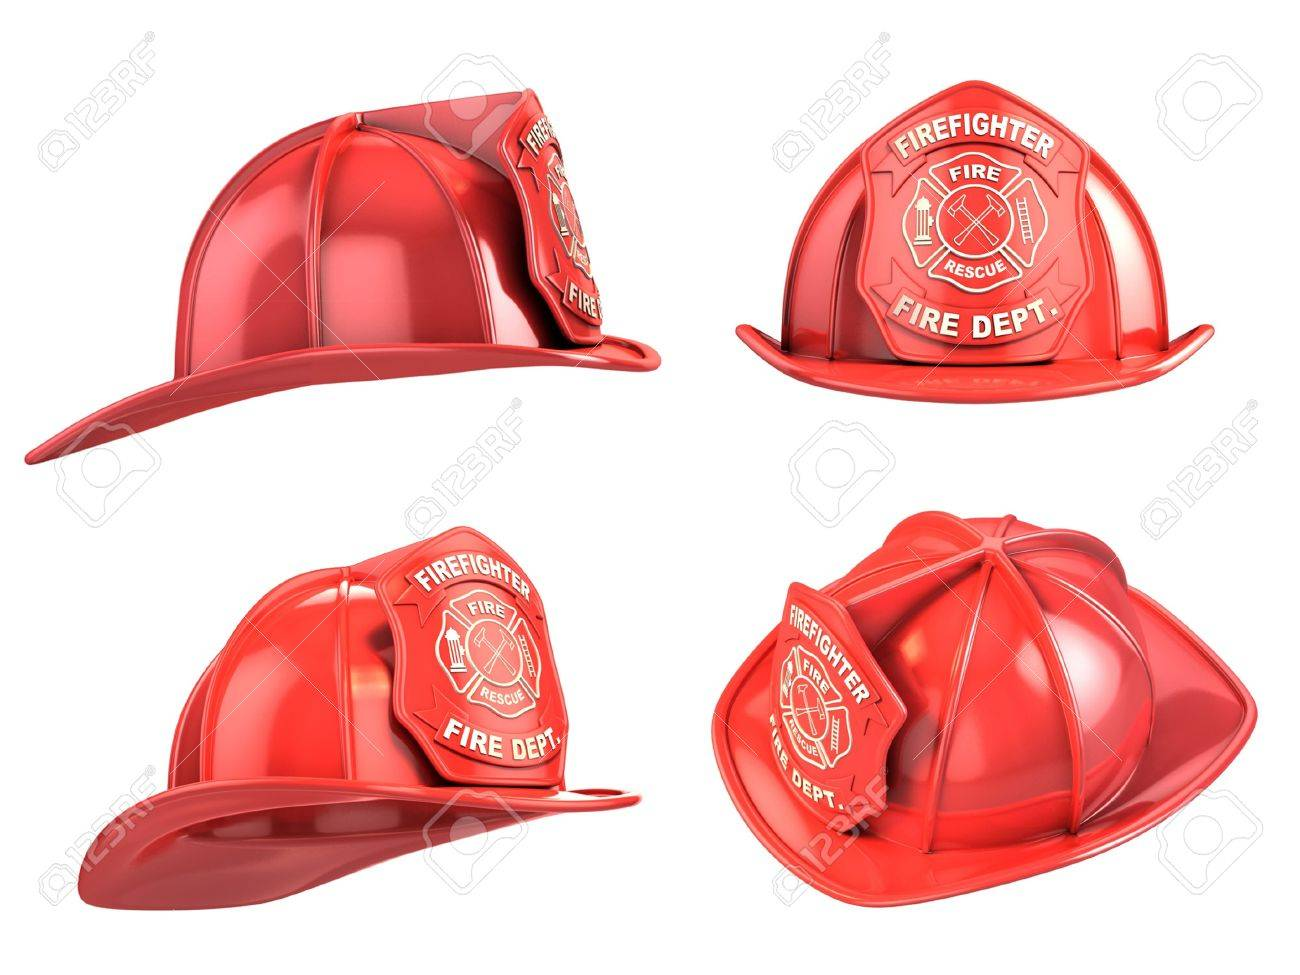 4 914 firefighter helmet stock illustrations cliparts and royalty